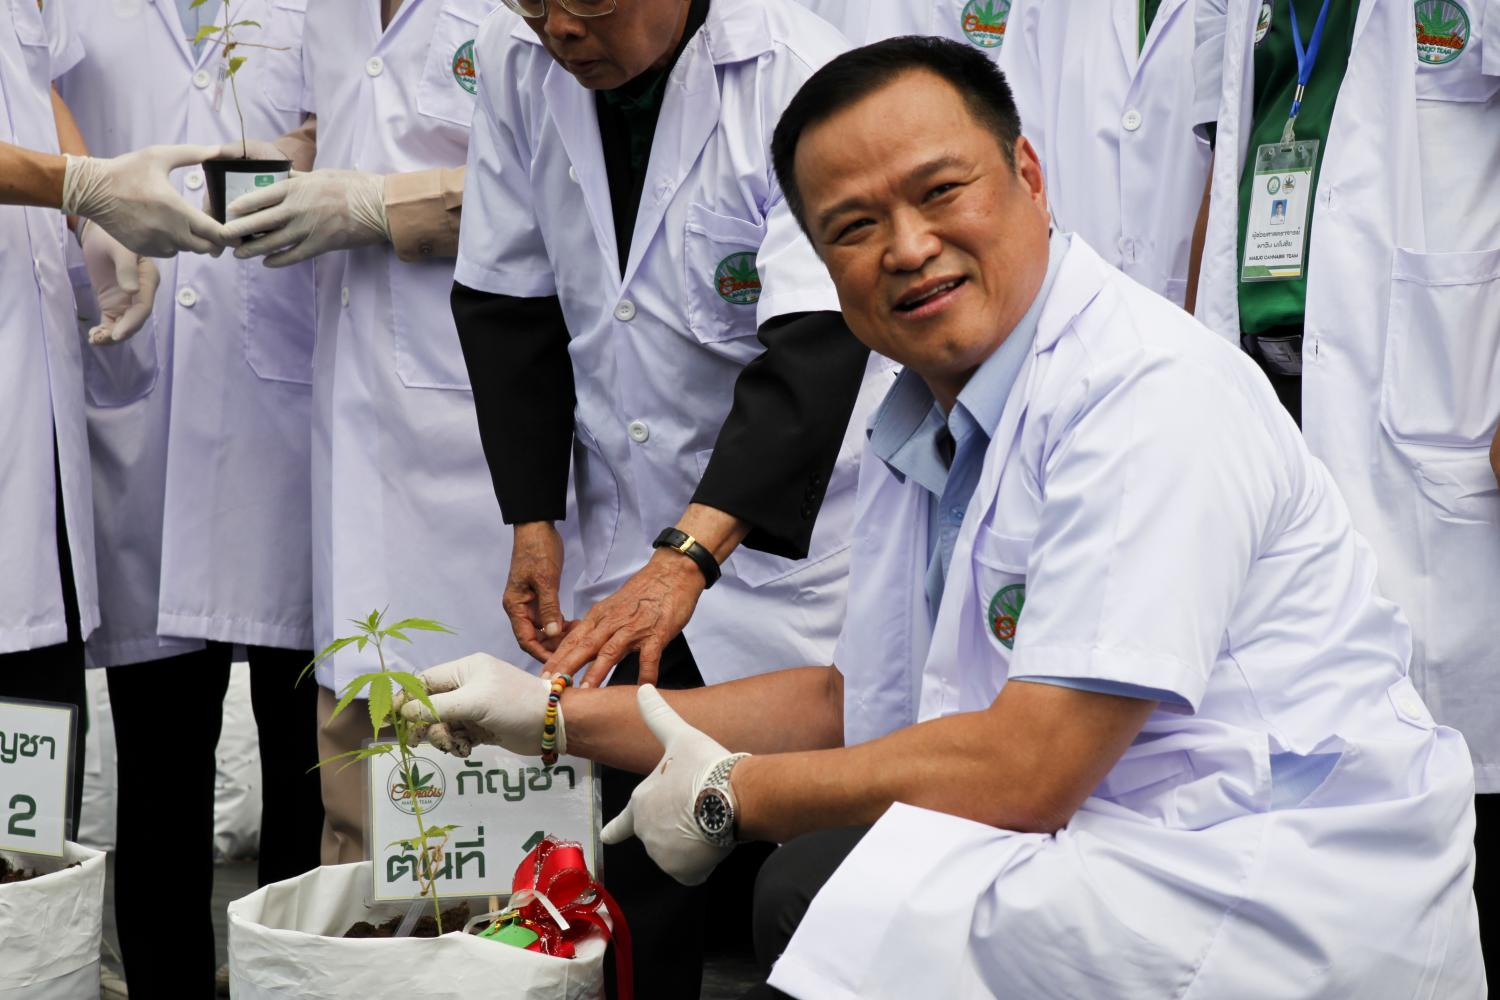 Inspecting the goods: Public Health Minister Anutin Charnvirakul attends a special cannabis planting ceremony at an organic farm in Chiang Mai's Maejo University. At least 12,000 cannabis sprouts have been planted.